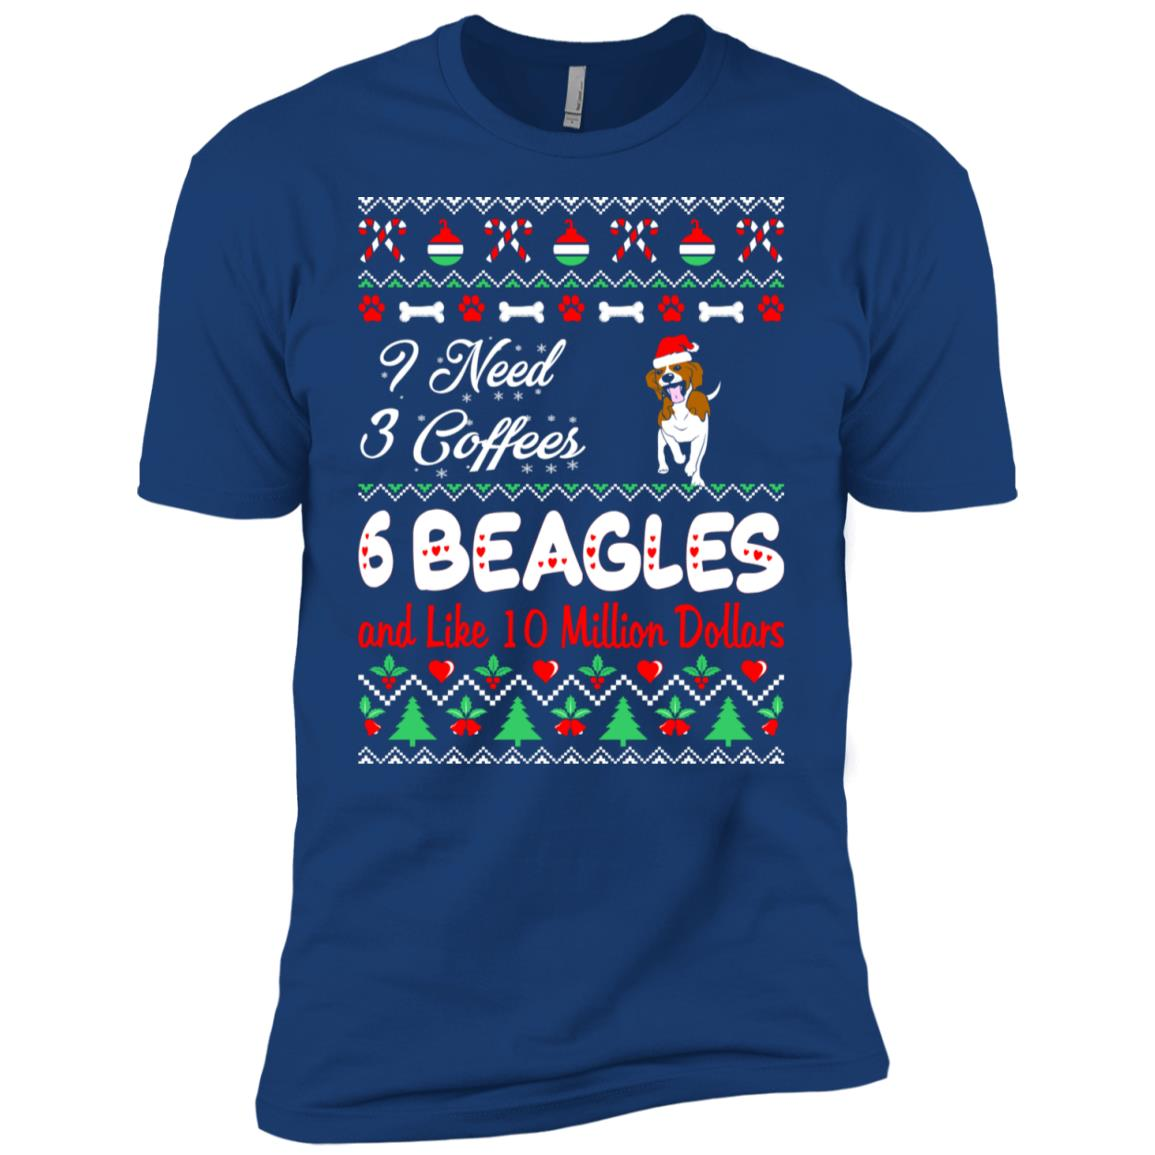 Need 3 Coffees 6 Beagles Christmas Ugly Sweater Men Short Sleeve T-Shirt